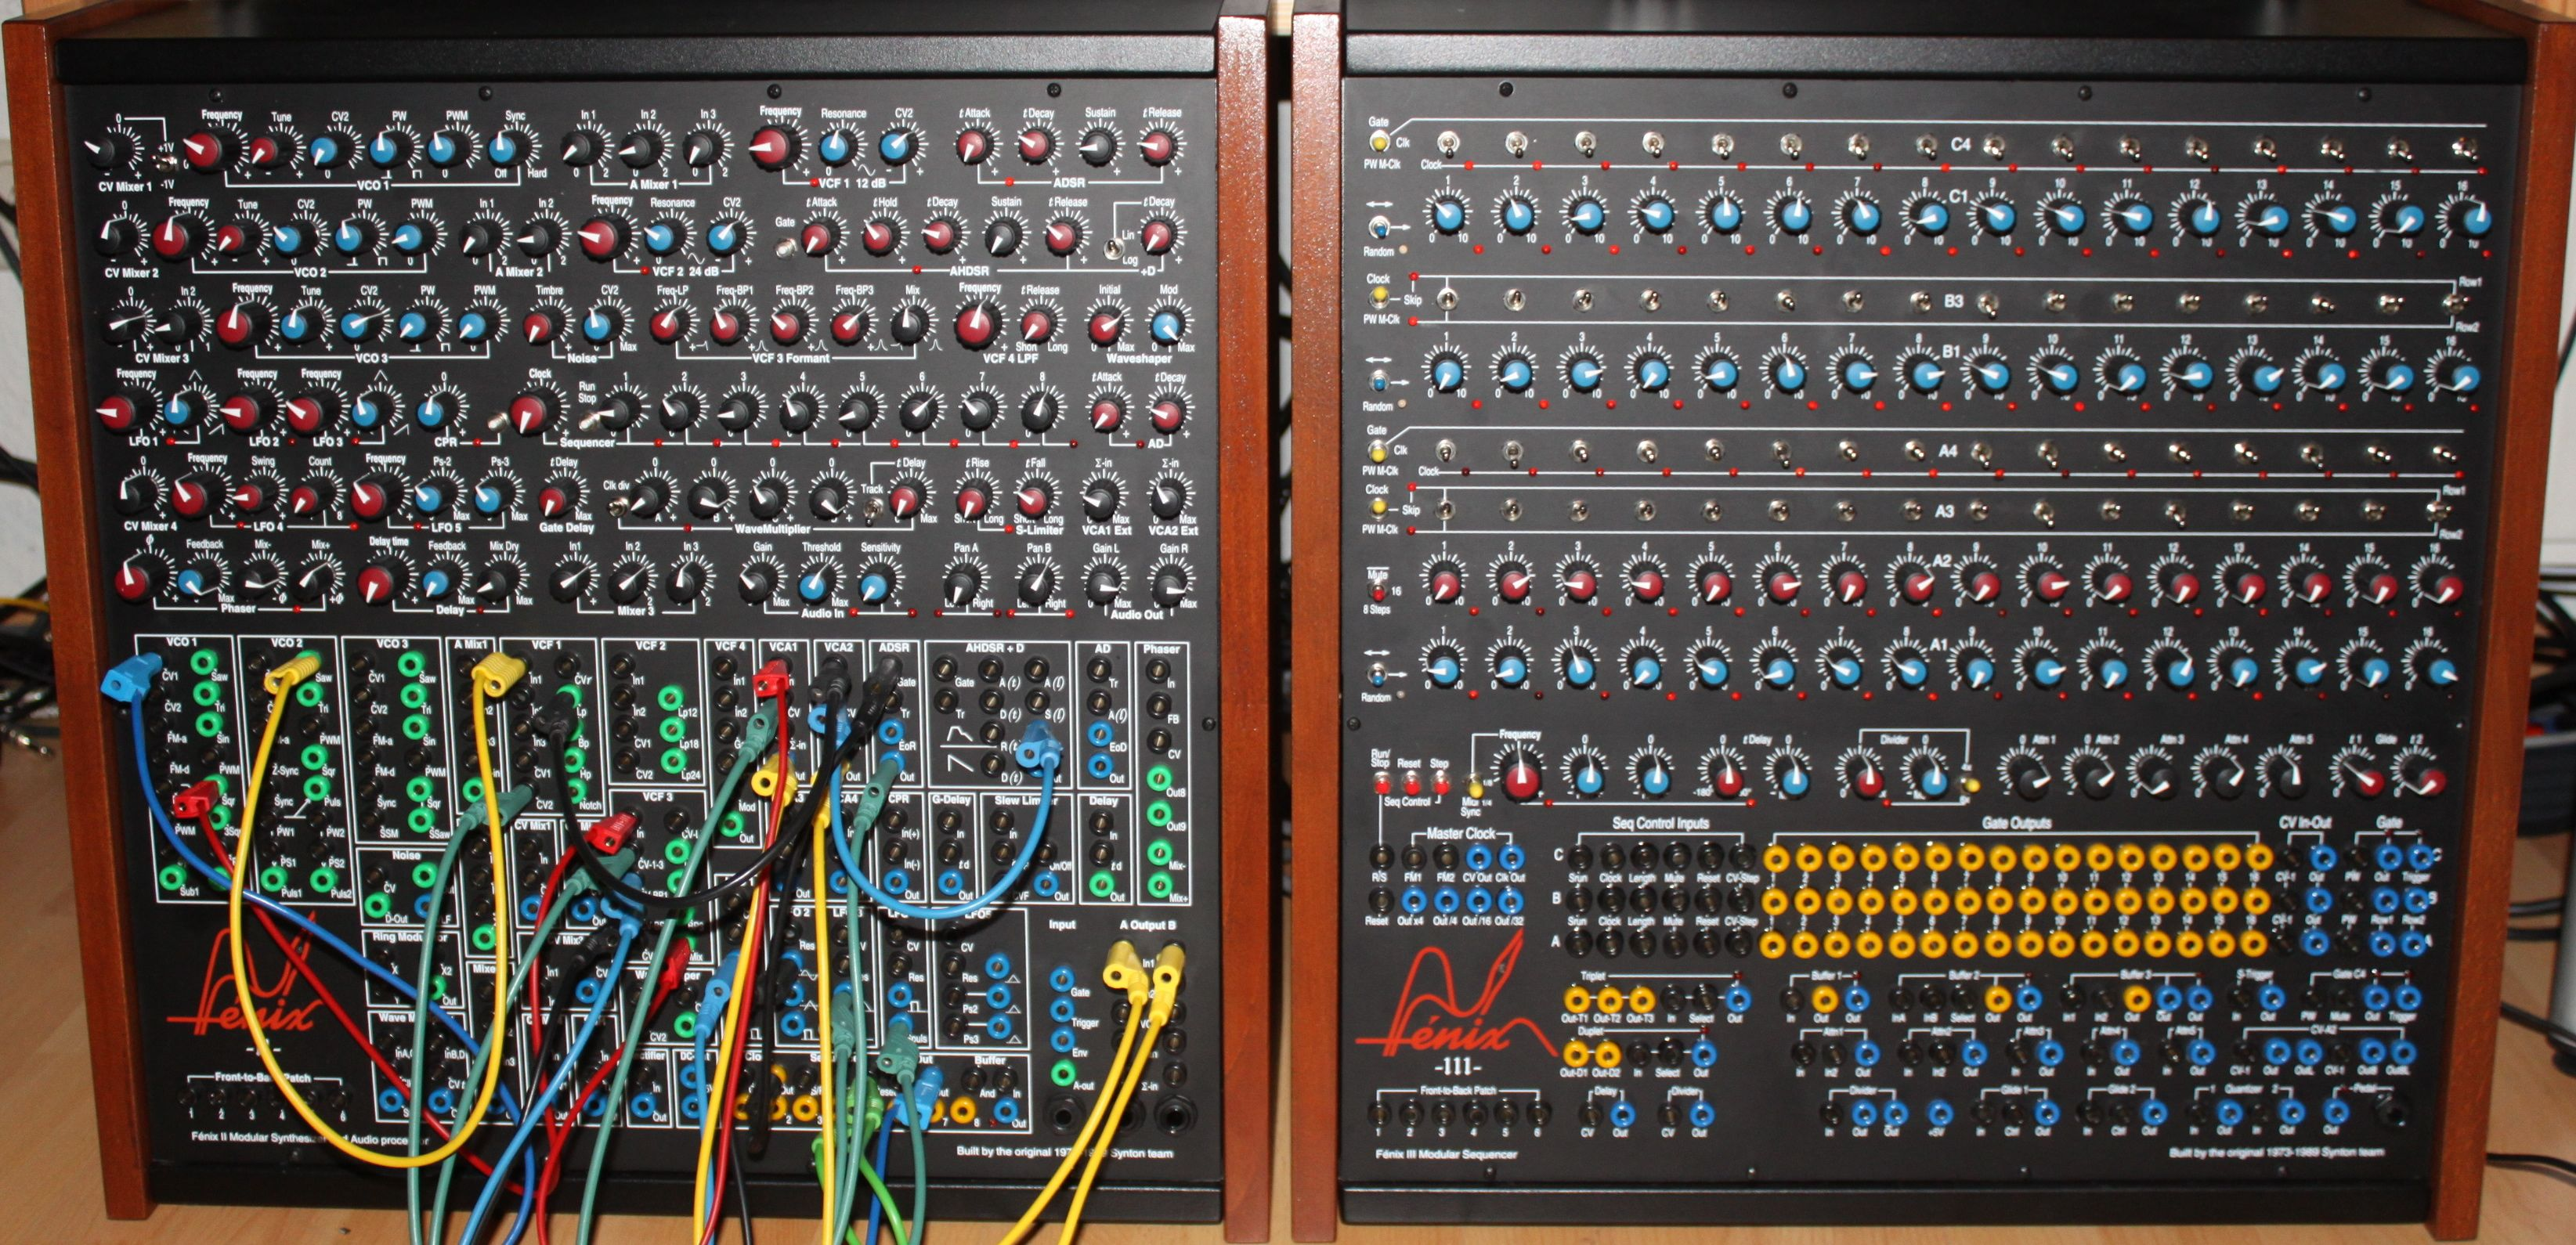 synton fenix ii modular synthesizer fenix iii modular sequencer. Black Bedroom Furniture Sets. Home Design Ideas